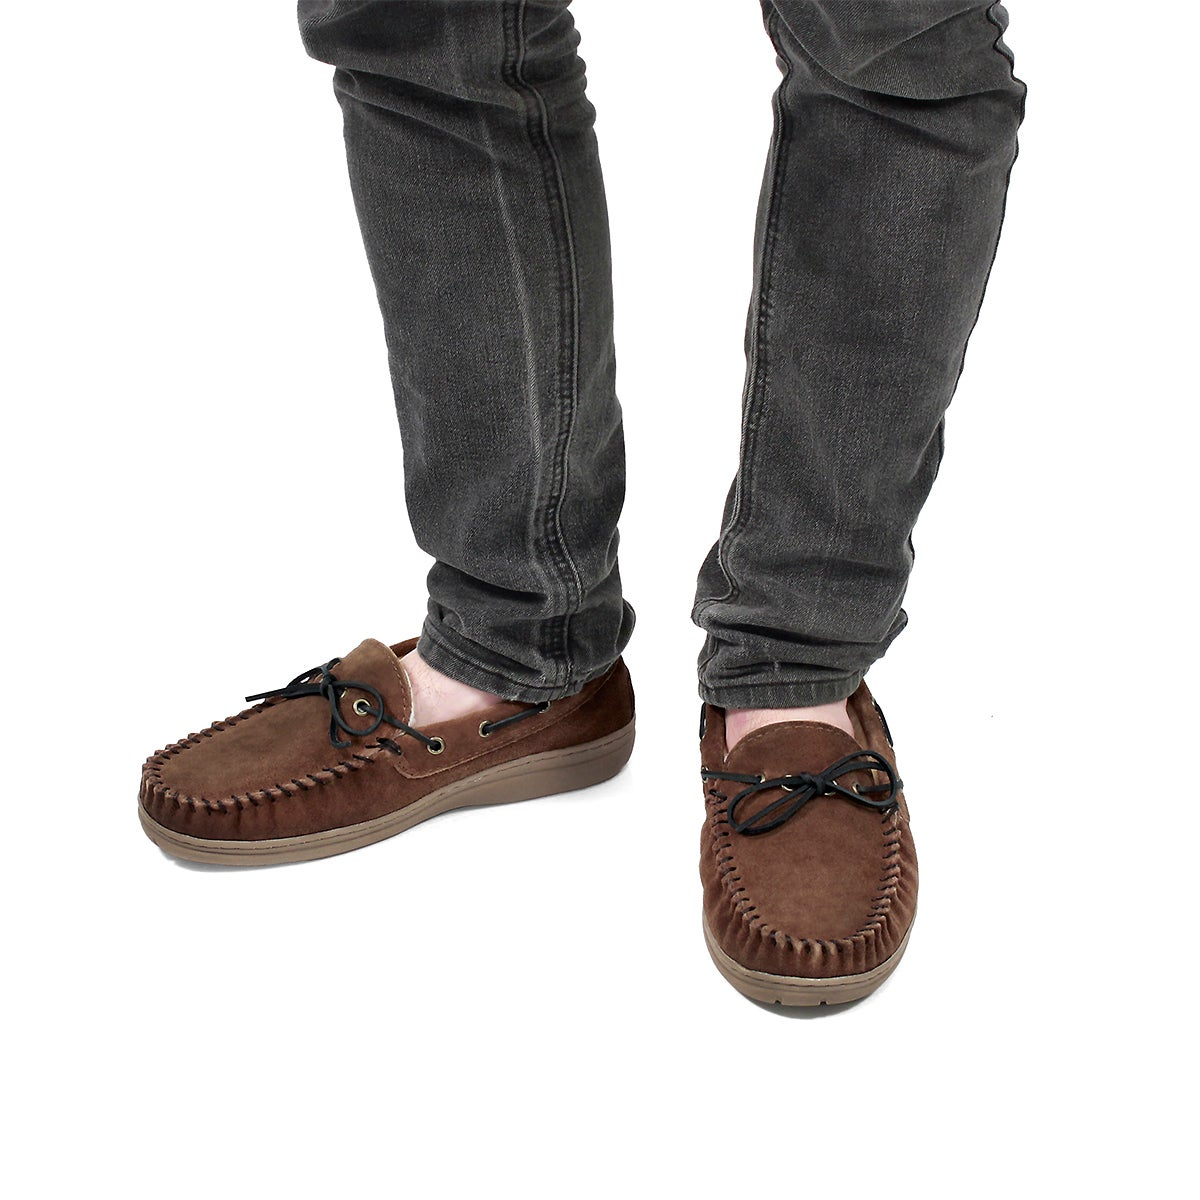 Mns Duke II spice lined suede mocc